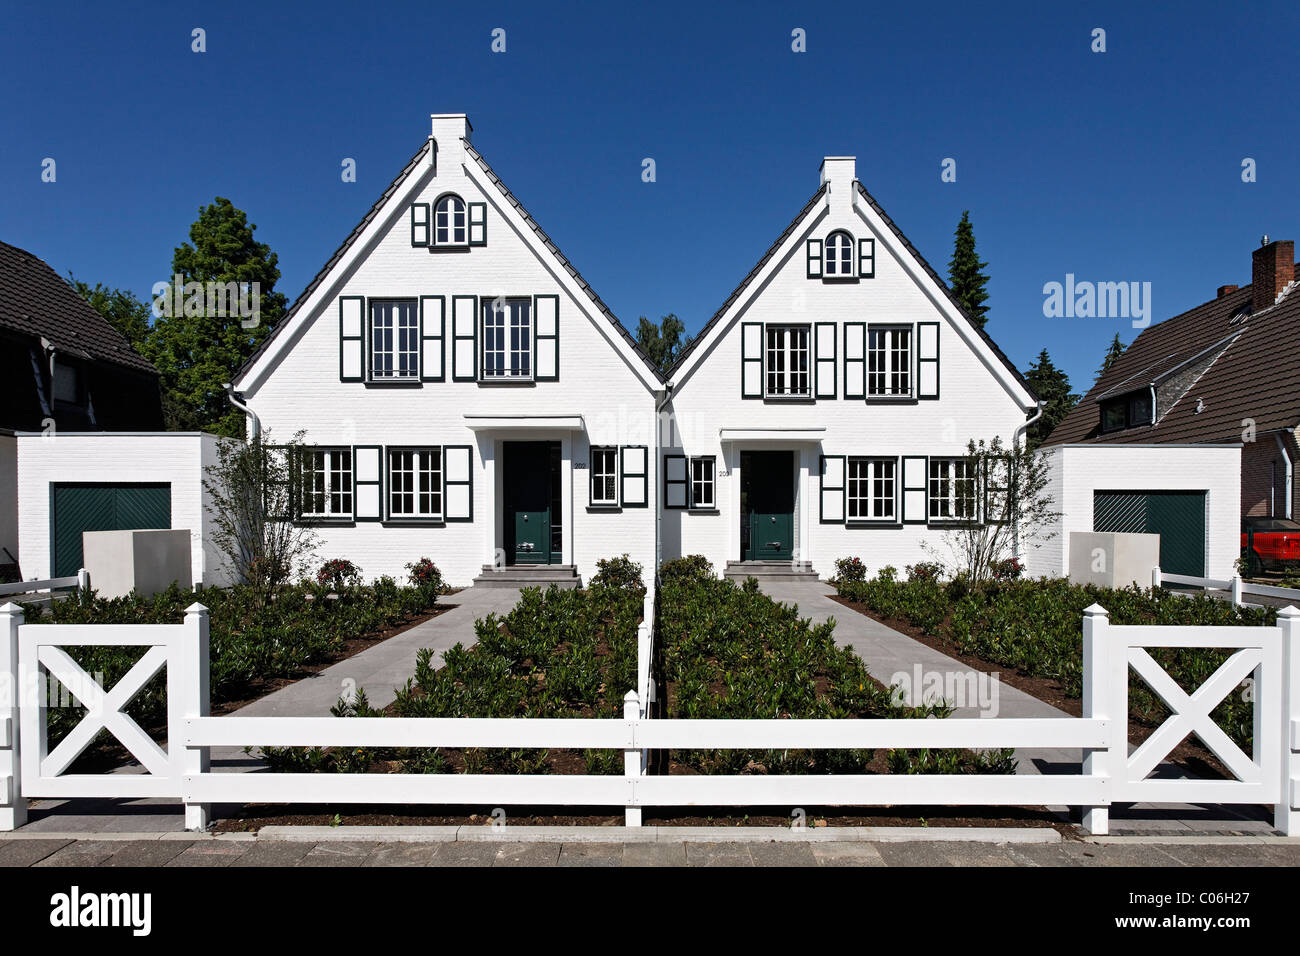 Two identical houses side by side, ready for moving in, Duesseldorf, North Rhine-Westphalia, Germany, Europe - Stock Image